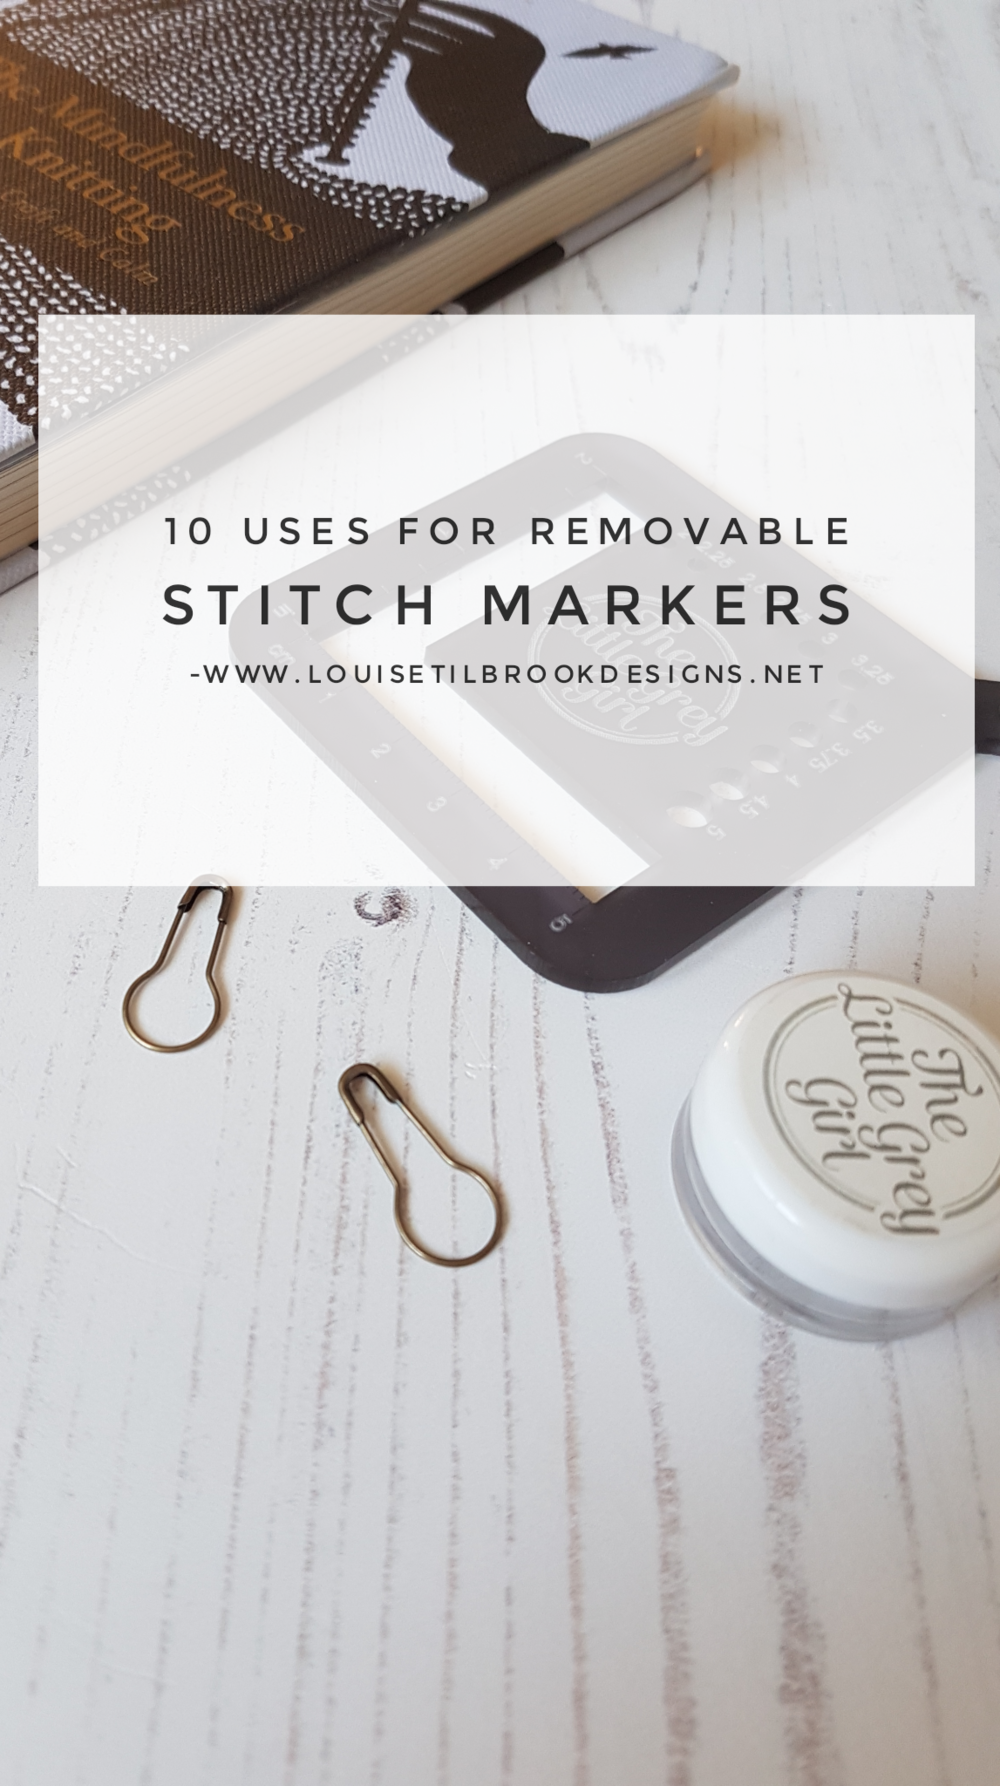 Ten uses for removable stitch markers.png